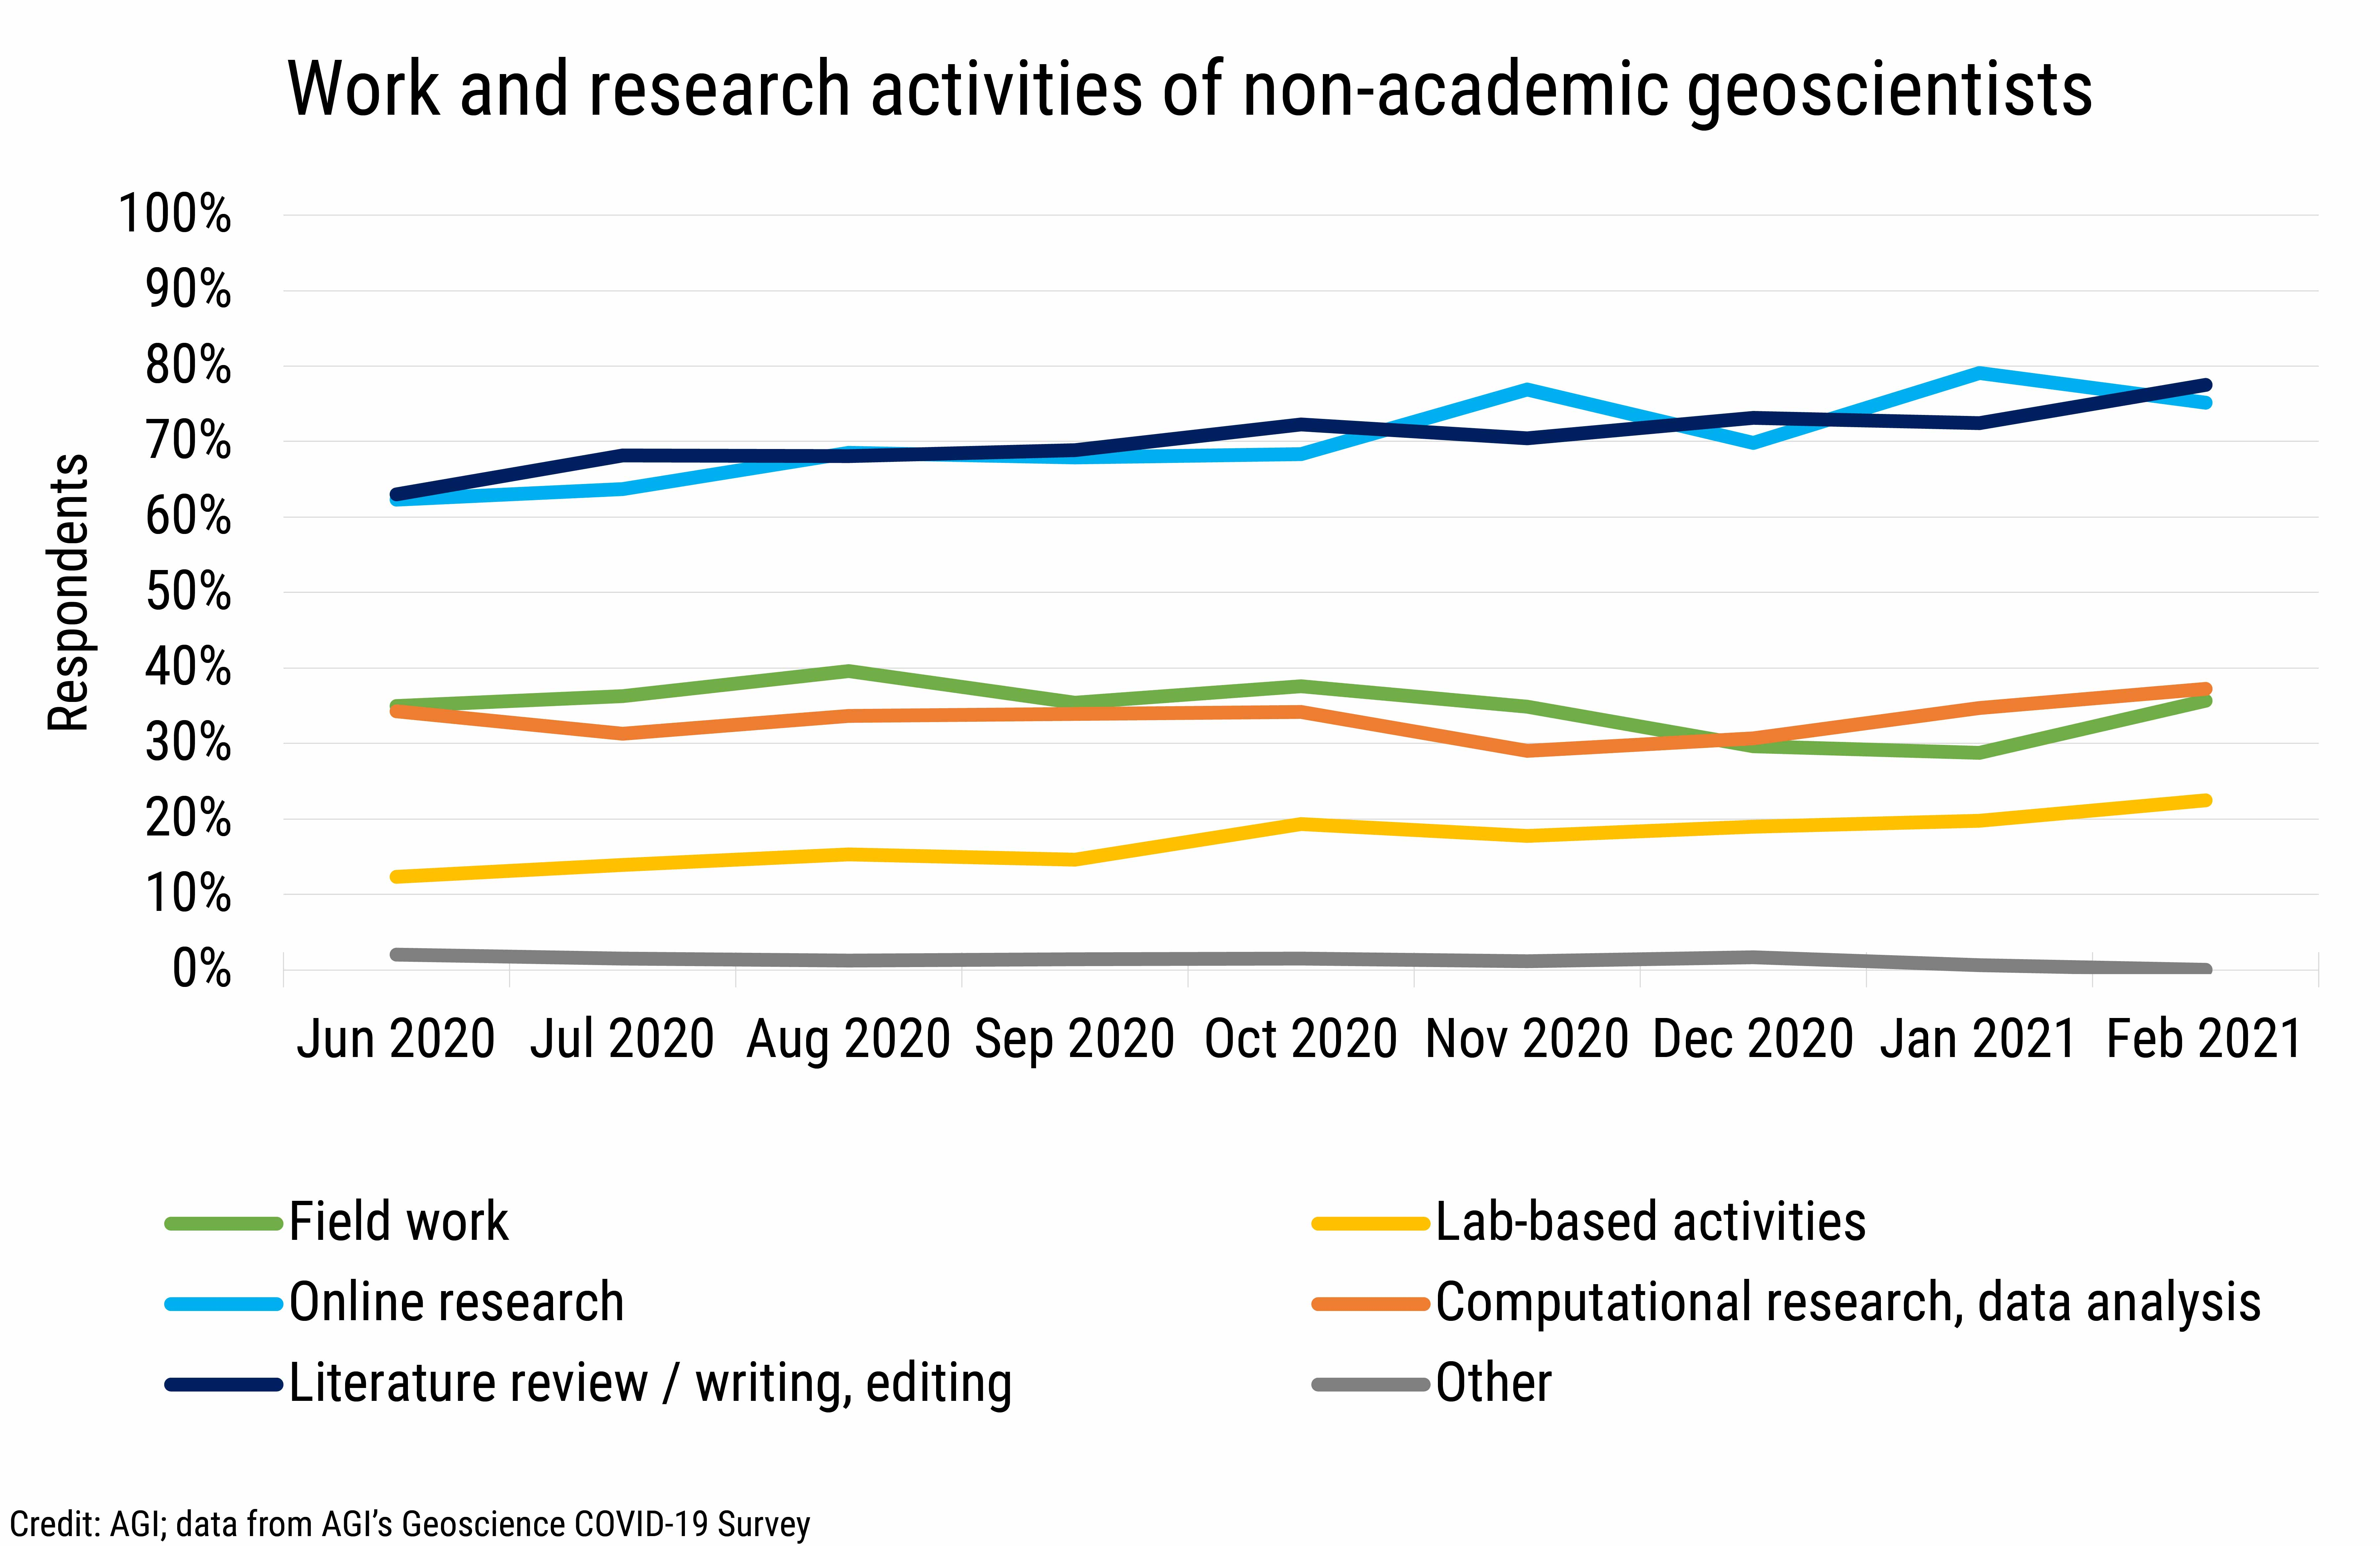 DB_2021-008 chart 01: Work and research activities of non-academic geoscientists (Credit: AGI; data from AGI's Geoscience COVID-19 Survey)